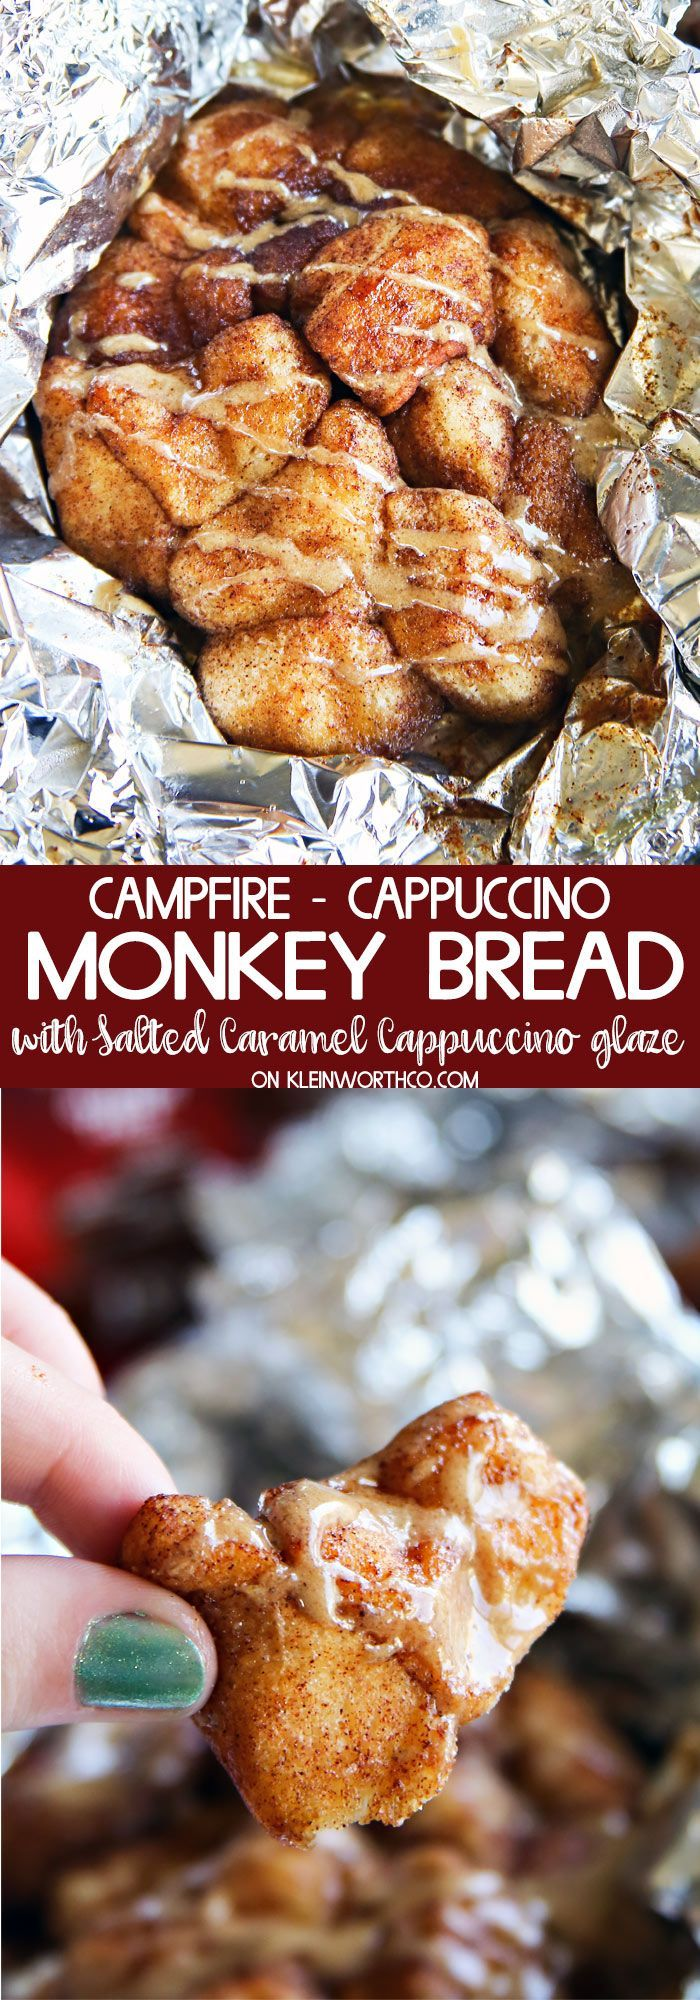 Campfire Cappuccino Monkey Bread is yummy breakfast bread coated in cinnamon, sugar & Salted Caramel Cappuccino mix, baked in tin foil over a campfire. #CappOnTheRocks #ad @hillsbros/